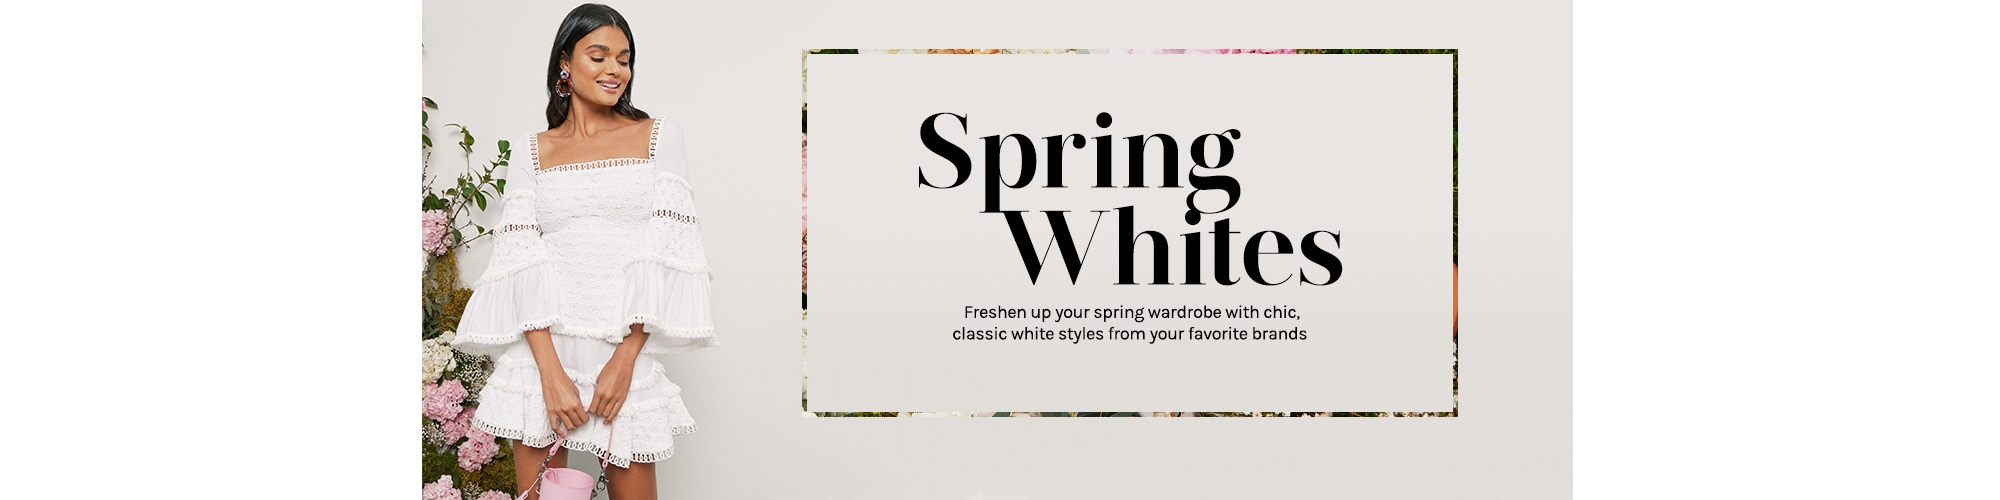 Spring Whites. Freshen up your spring wardrobe with chic, classic white styles from your favorite brands. Shop the Edit